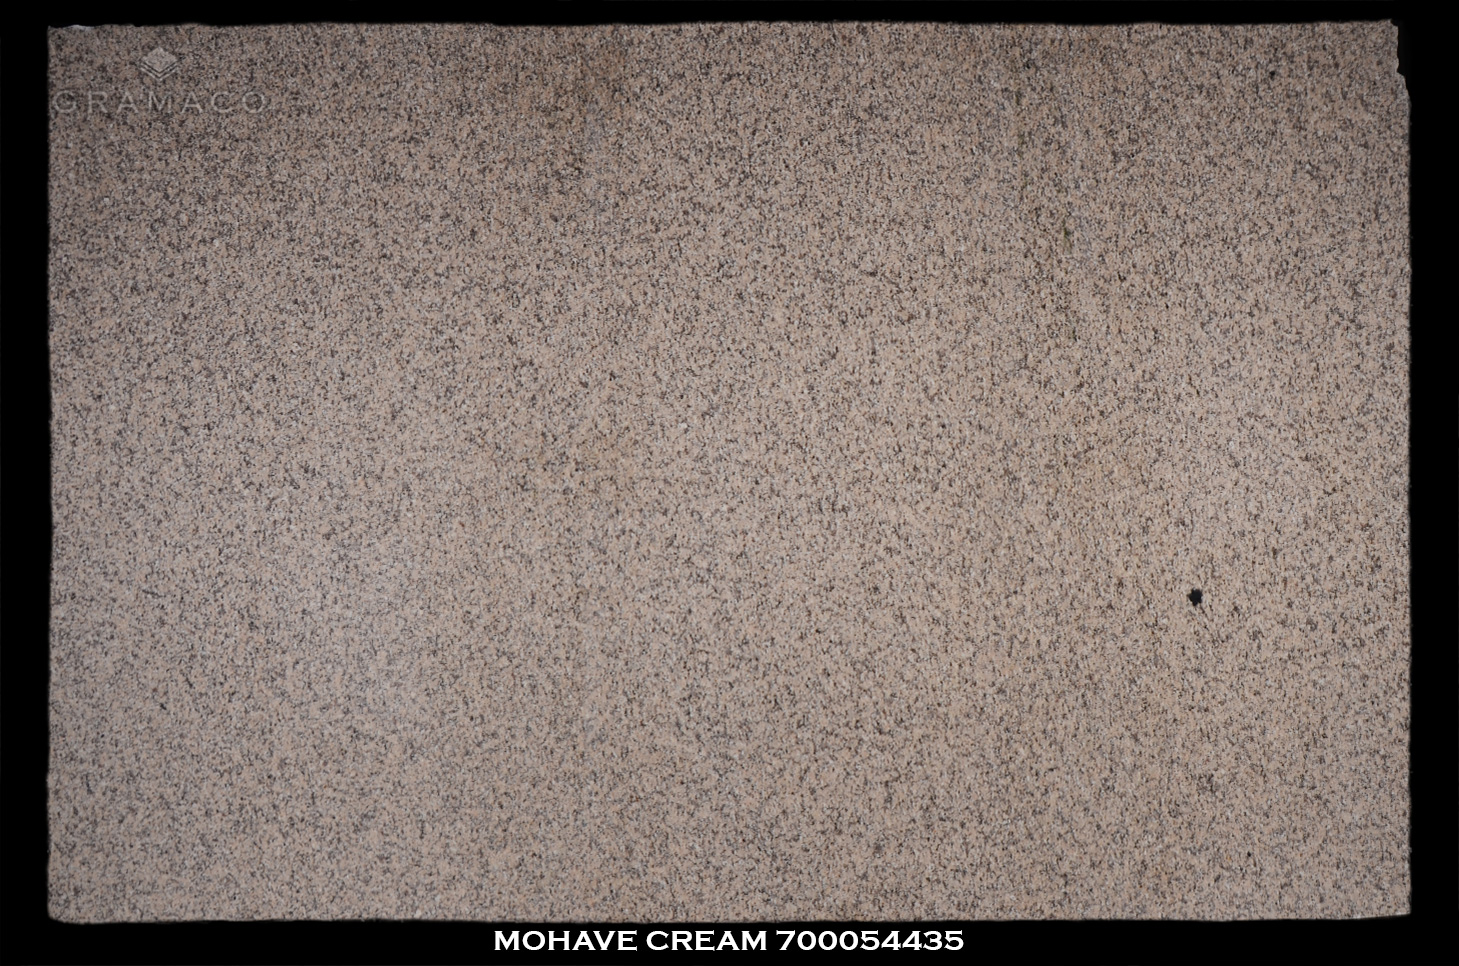 mohave_cream700054435-slab